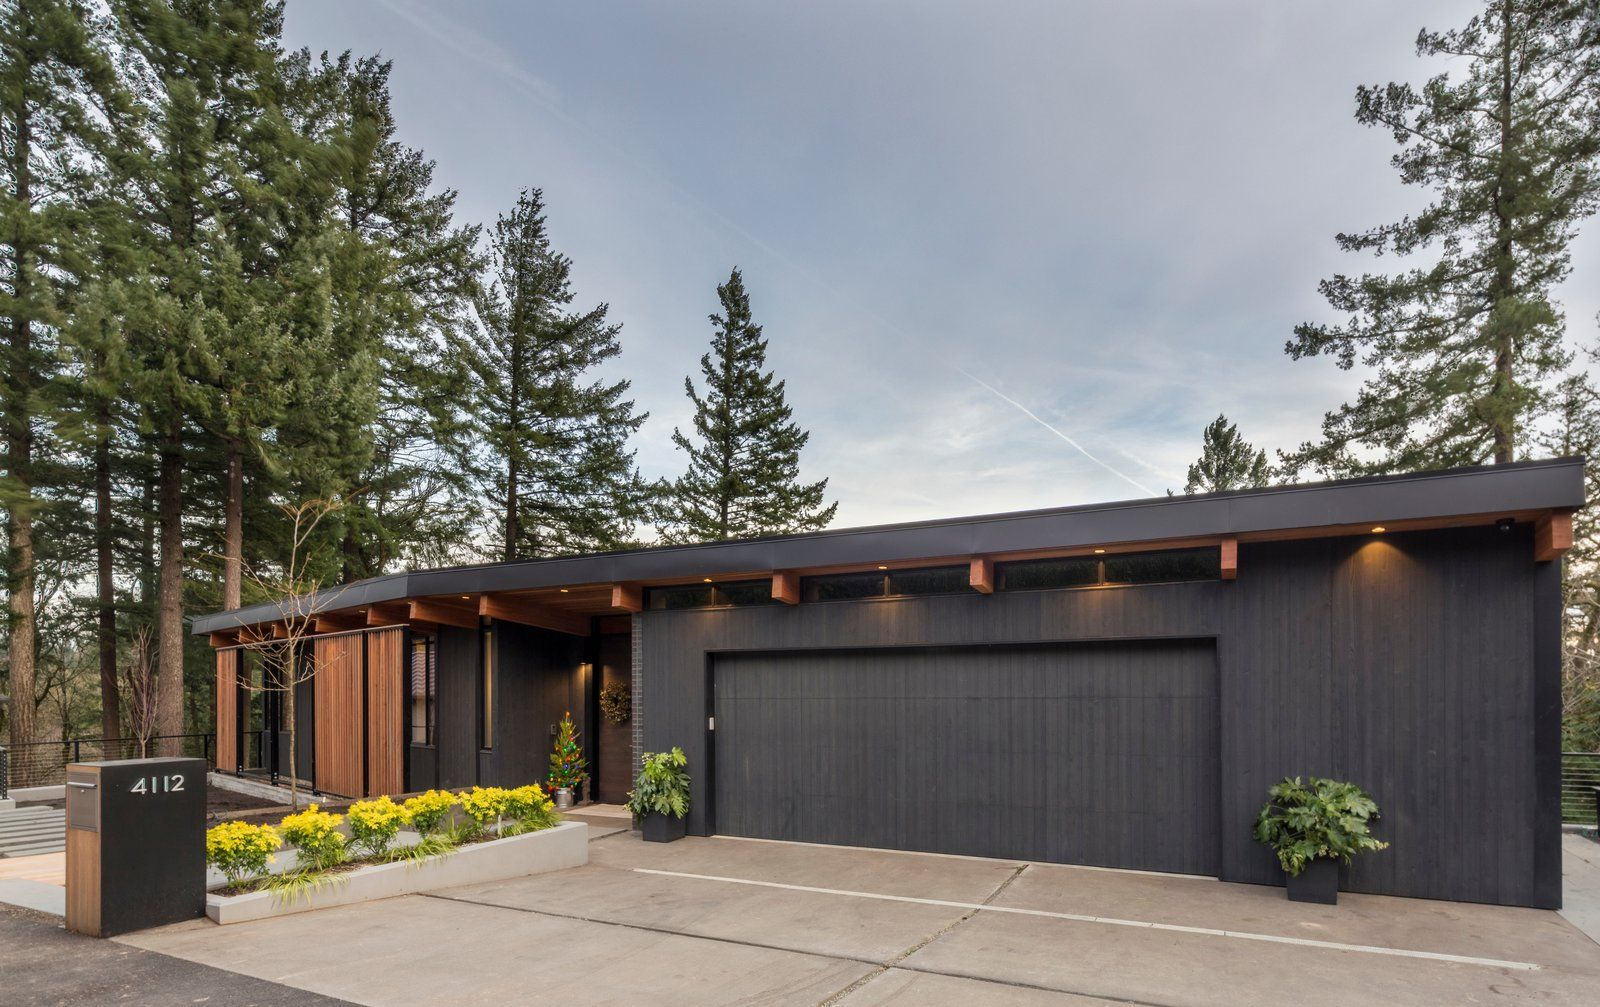 Exterior Brick Siding Material House Building Type Butterfly Roofline And Wood Siding Mat Gray House Exterior Midcentury Modern Mid Century Modern Exterior